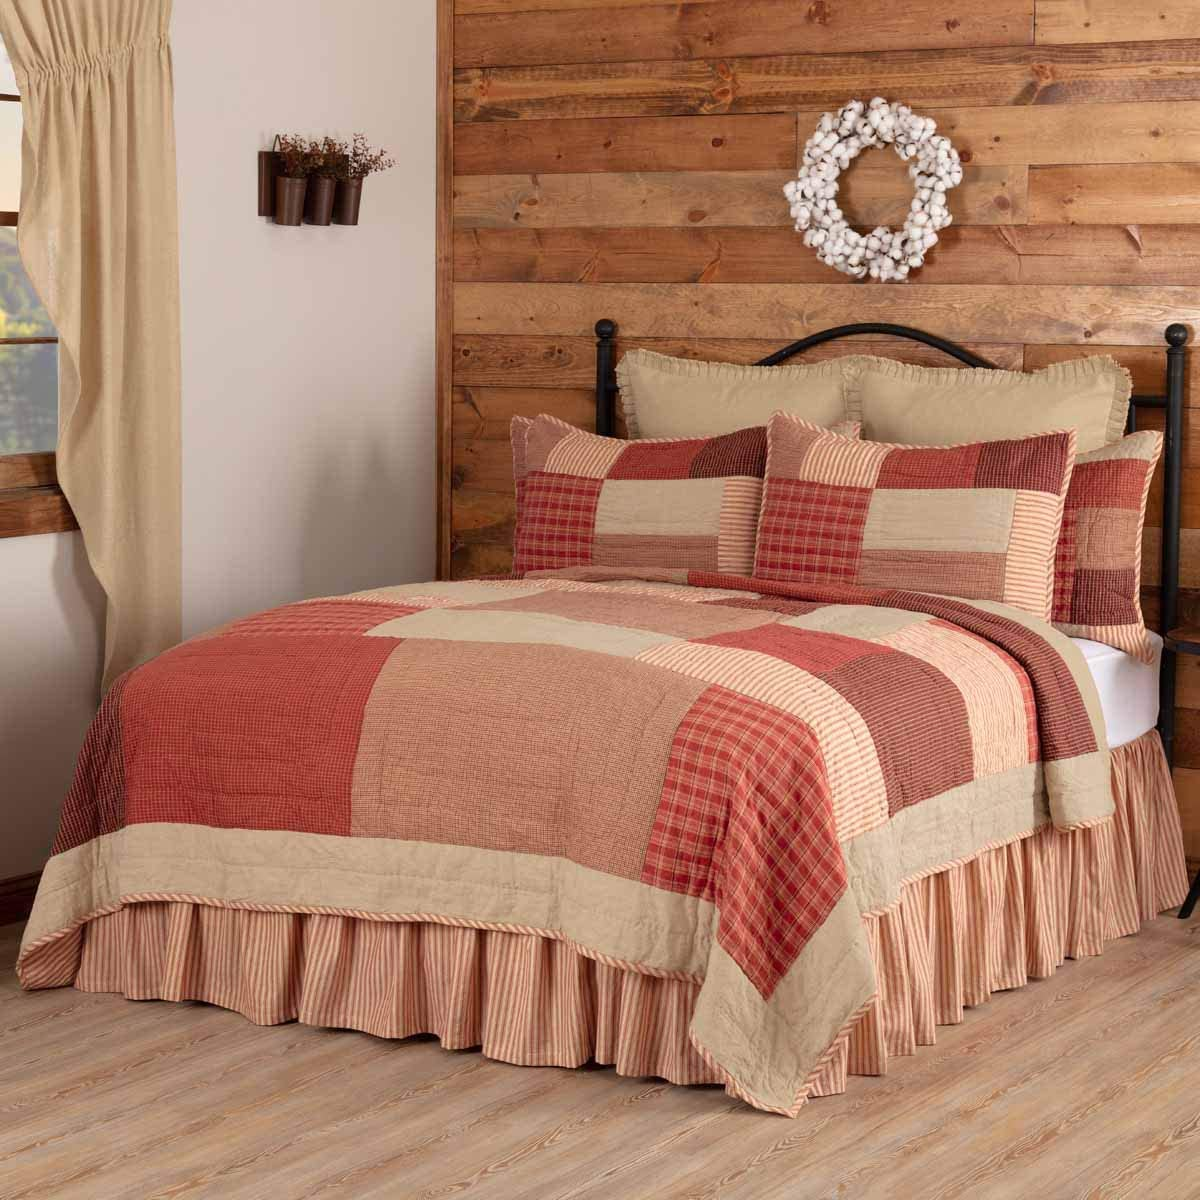 VHC Brands Rory Schoolhouse Patchwork Farmhouse Cotton Reversible Ticking Stripe Bedroom Quilt, California King-130×115, Red